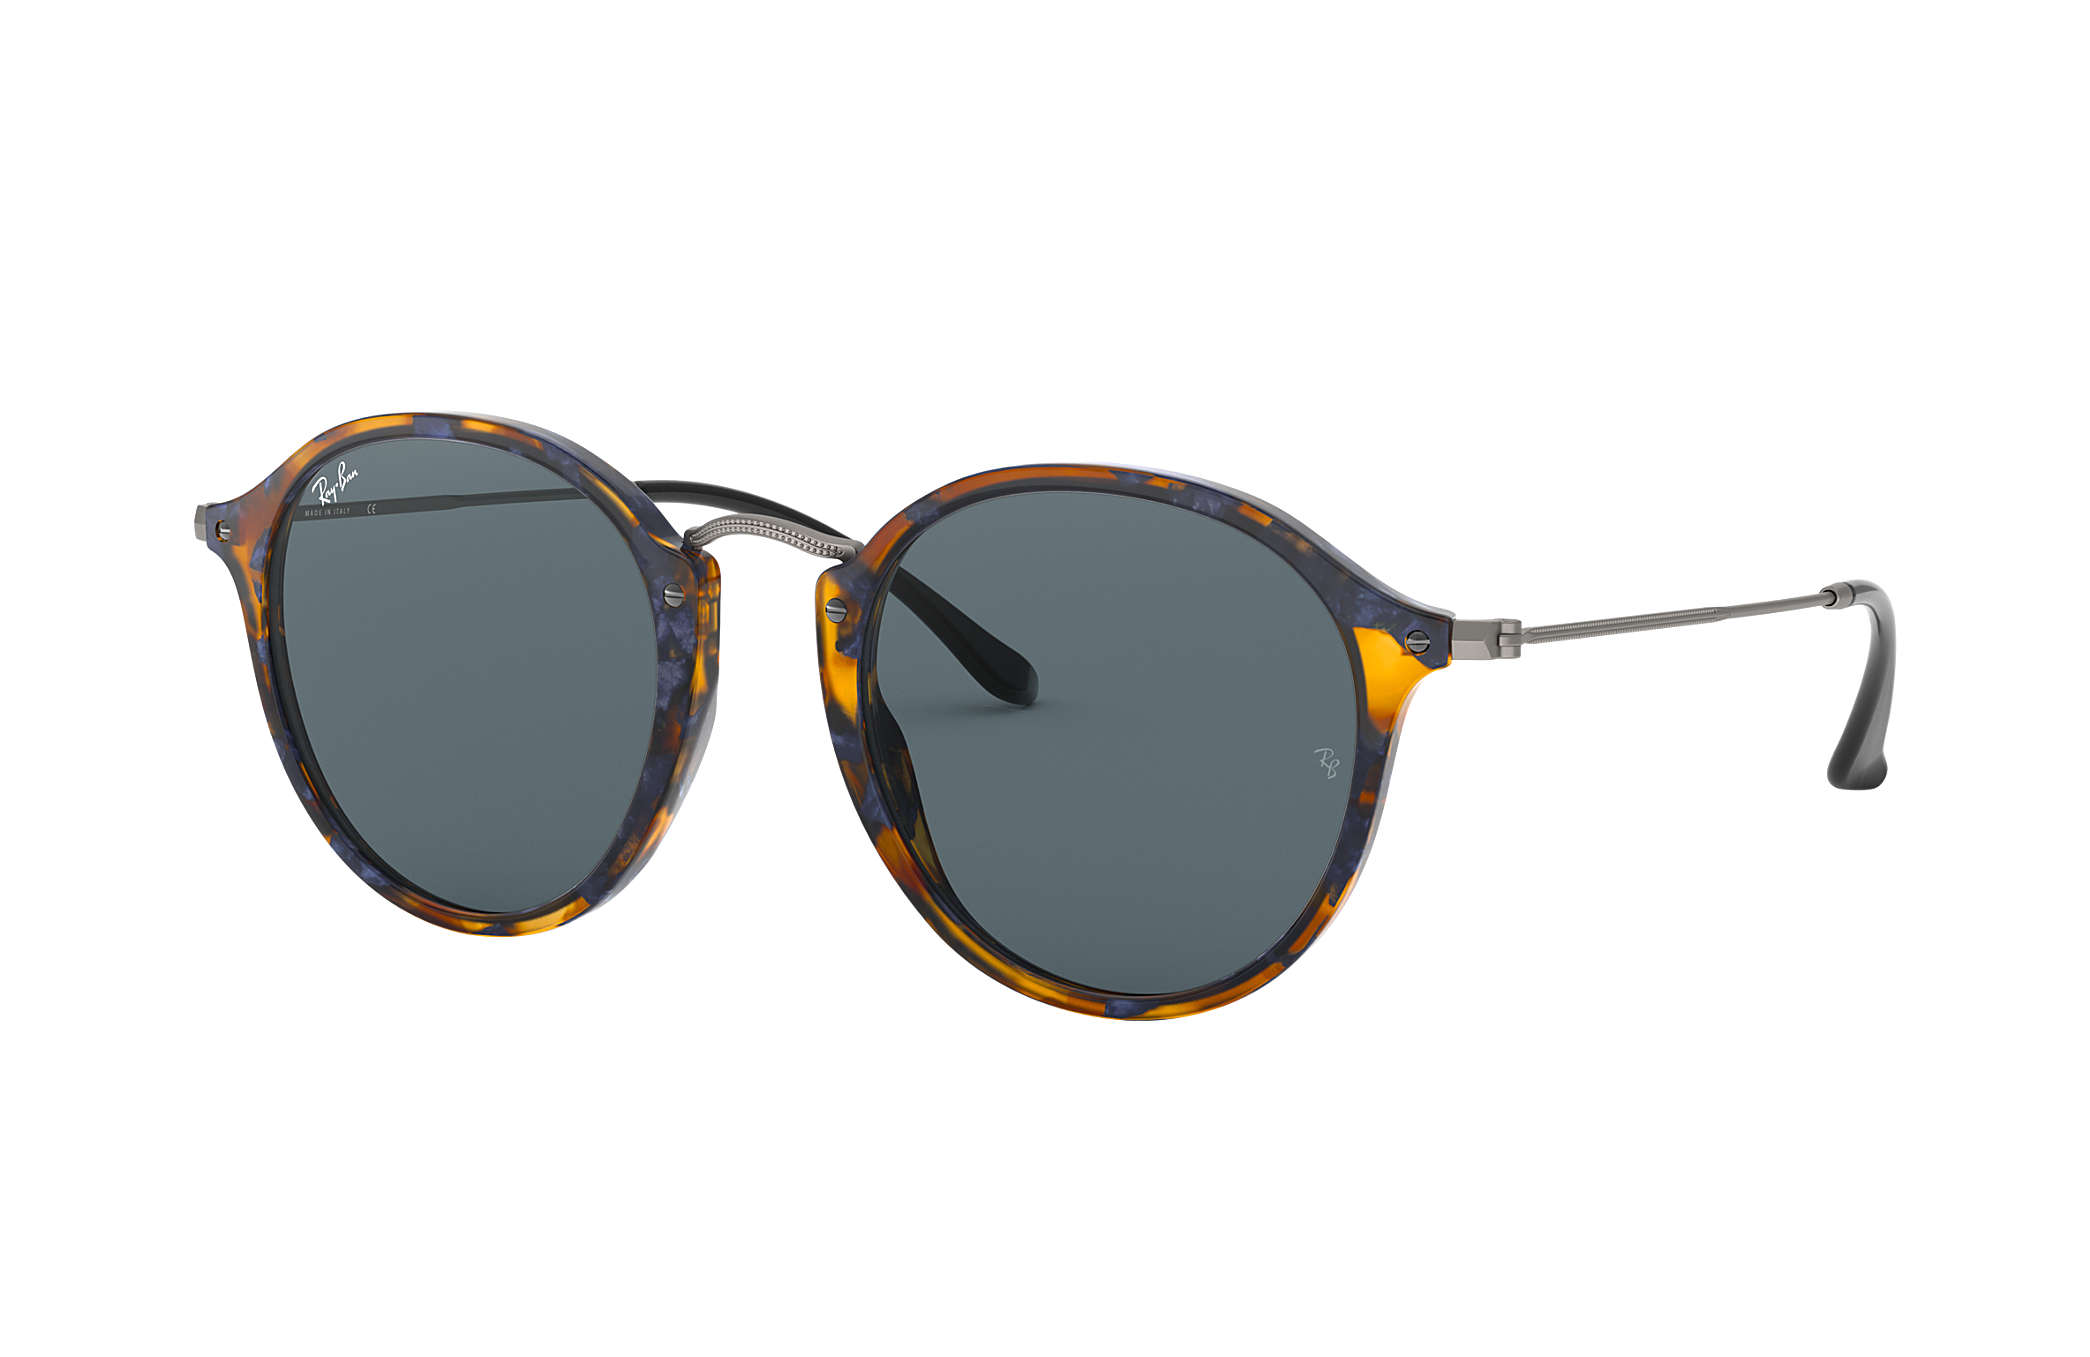 ae93798a0c Ray-Ban Round Fleck RB2447 Tortoise - Acetate - Blue Gray Lenses ...